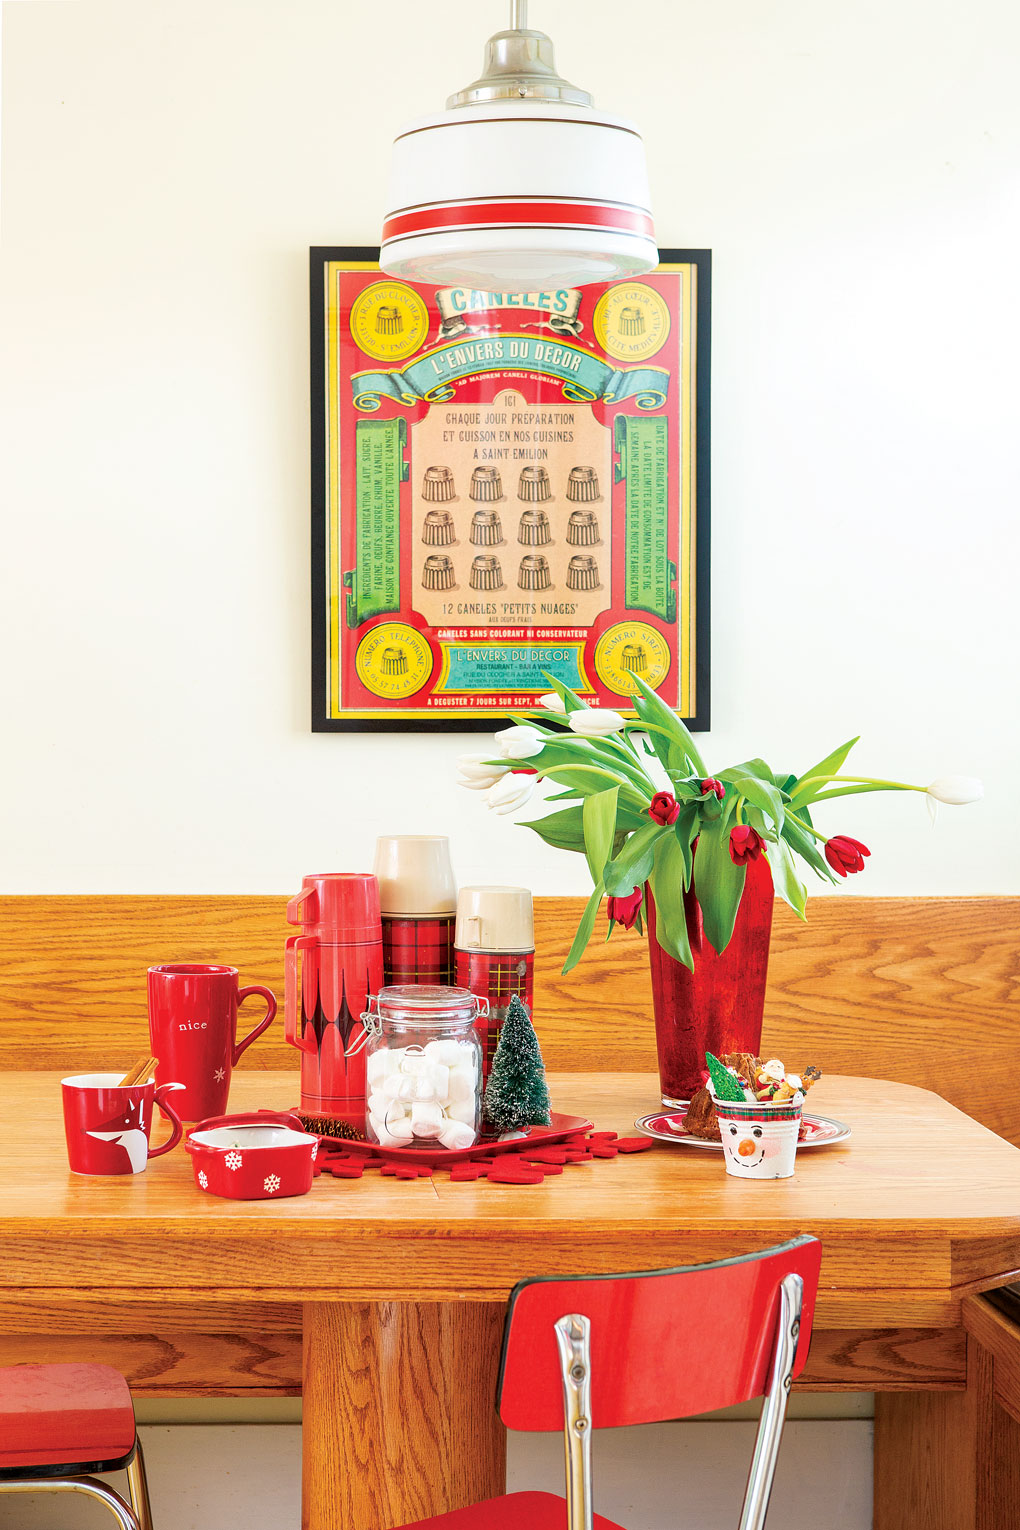 A wooden breakfast nook is adorned with red accents, a vase of red tulips and a collection of vintage thermoses.